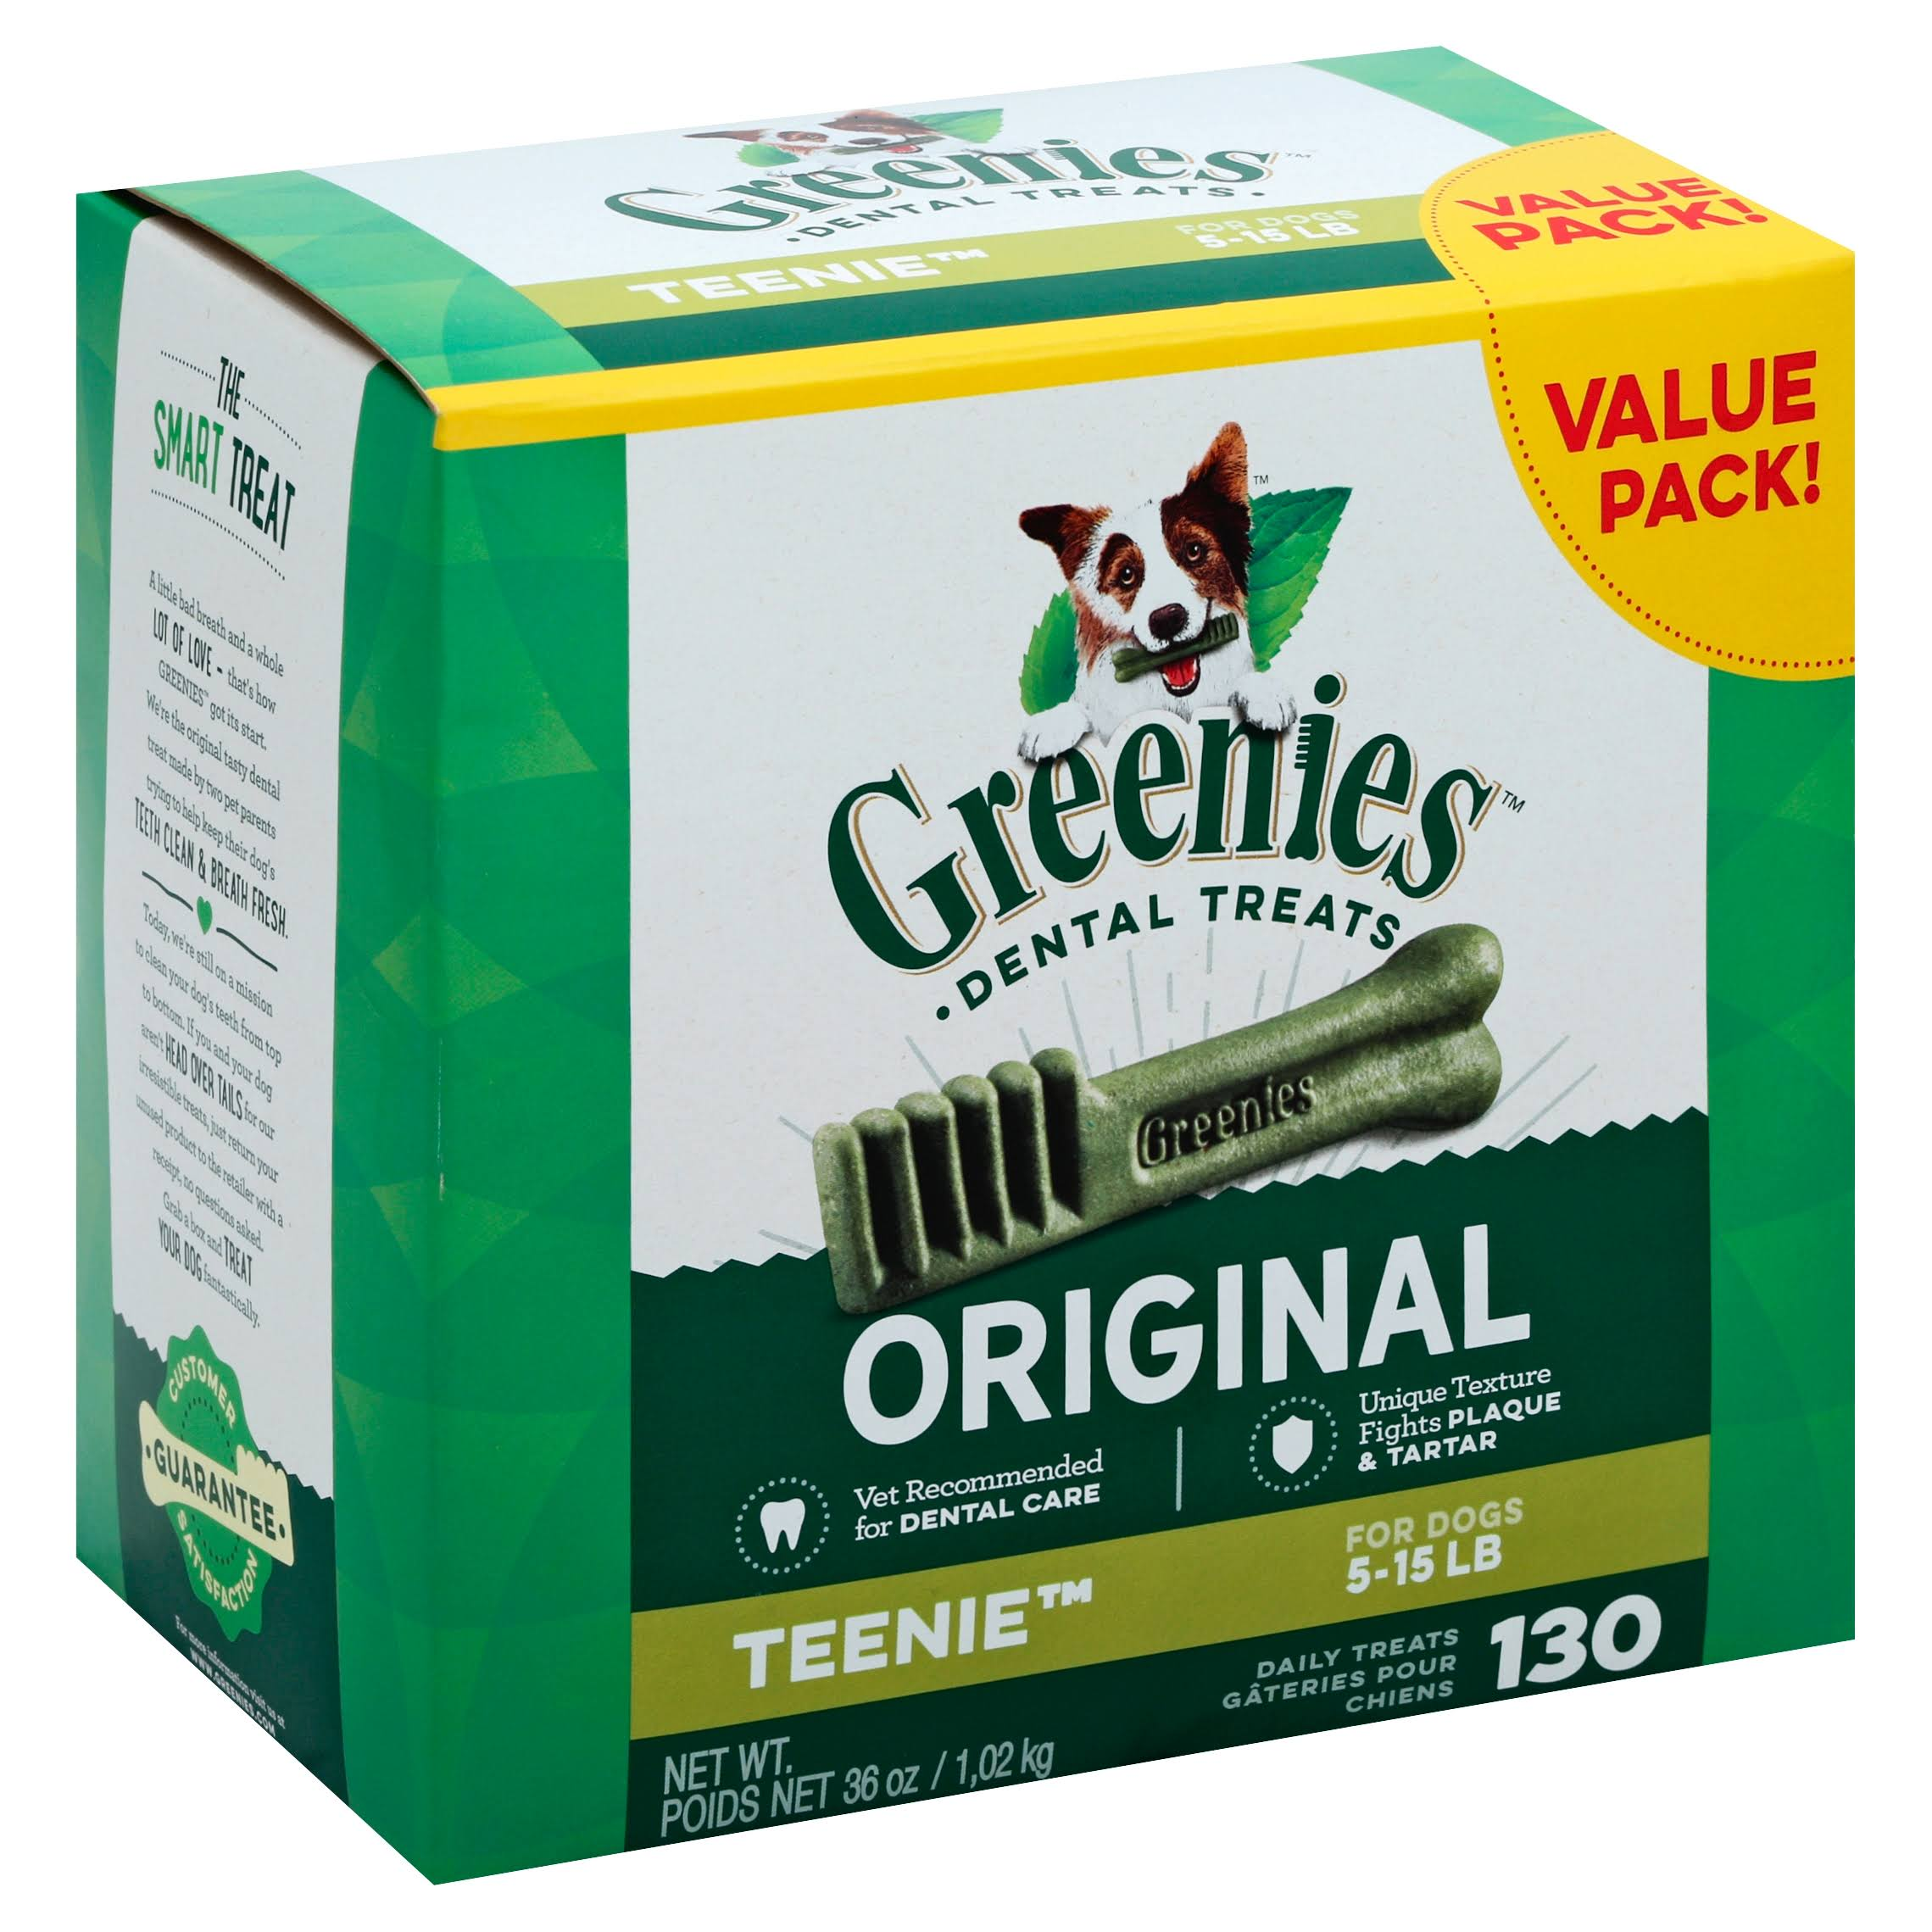 GREENIES Original TEENIE Dog Dental Chews Dog Treats - 36oz, 130 Pack